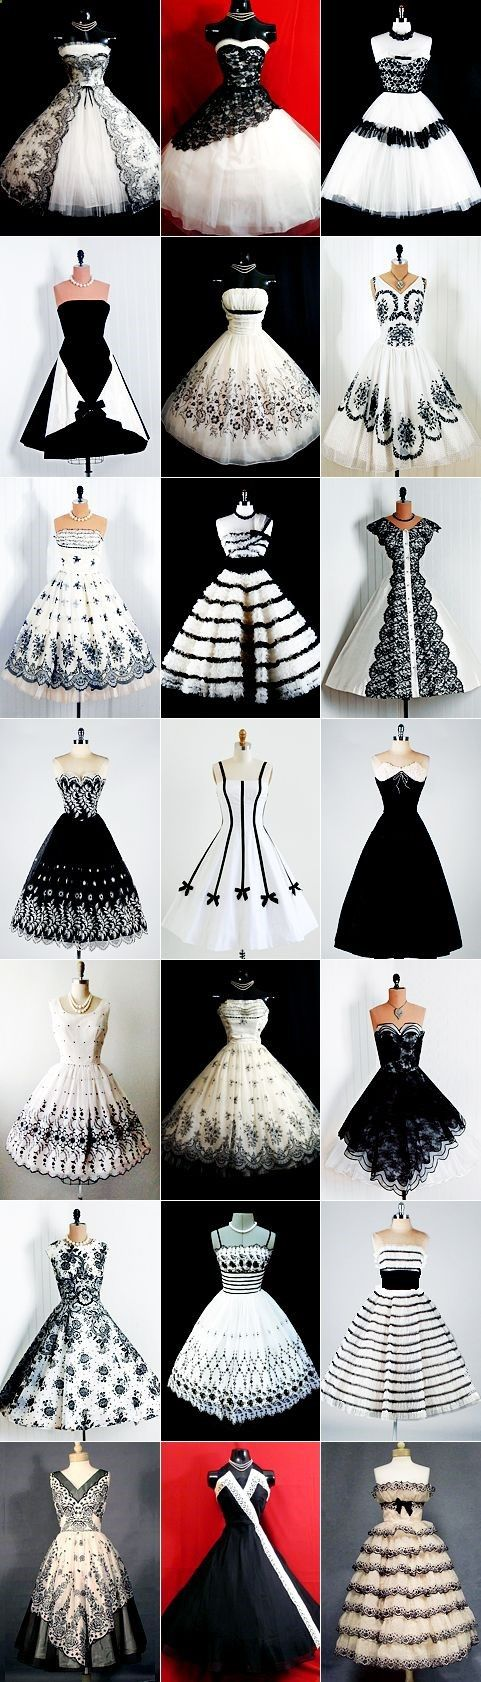 Mme Padva designs - Same patterns and designs with a 1800's style and material